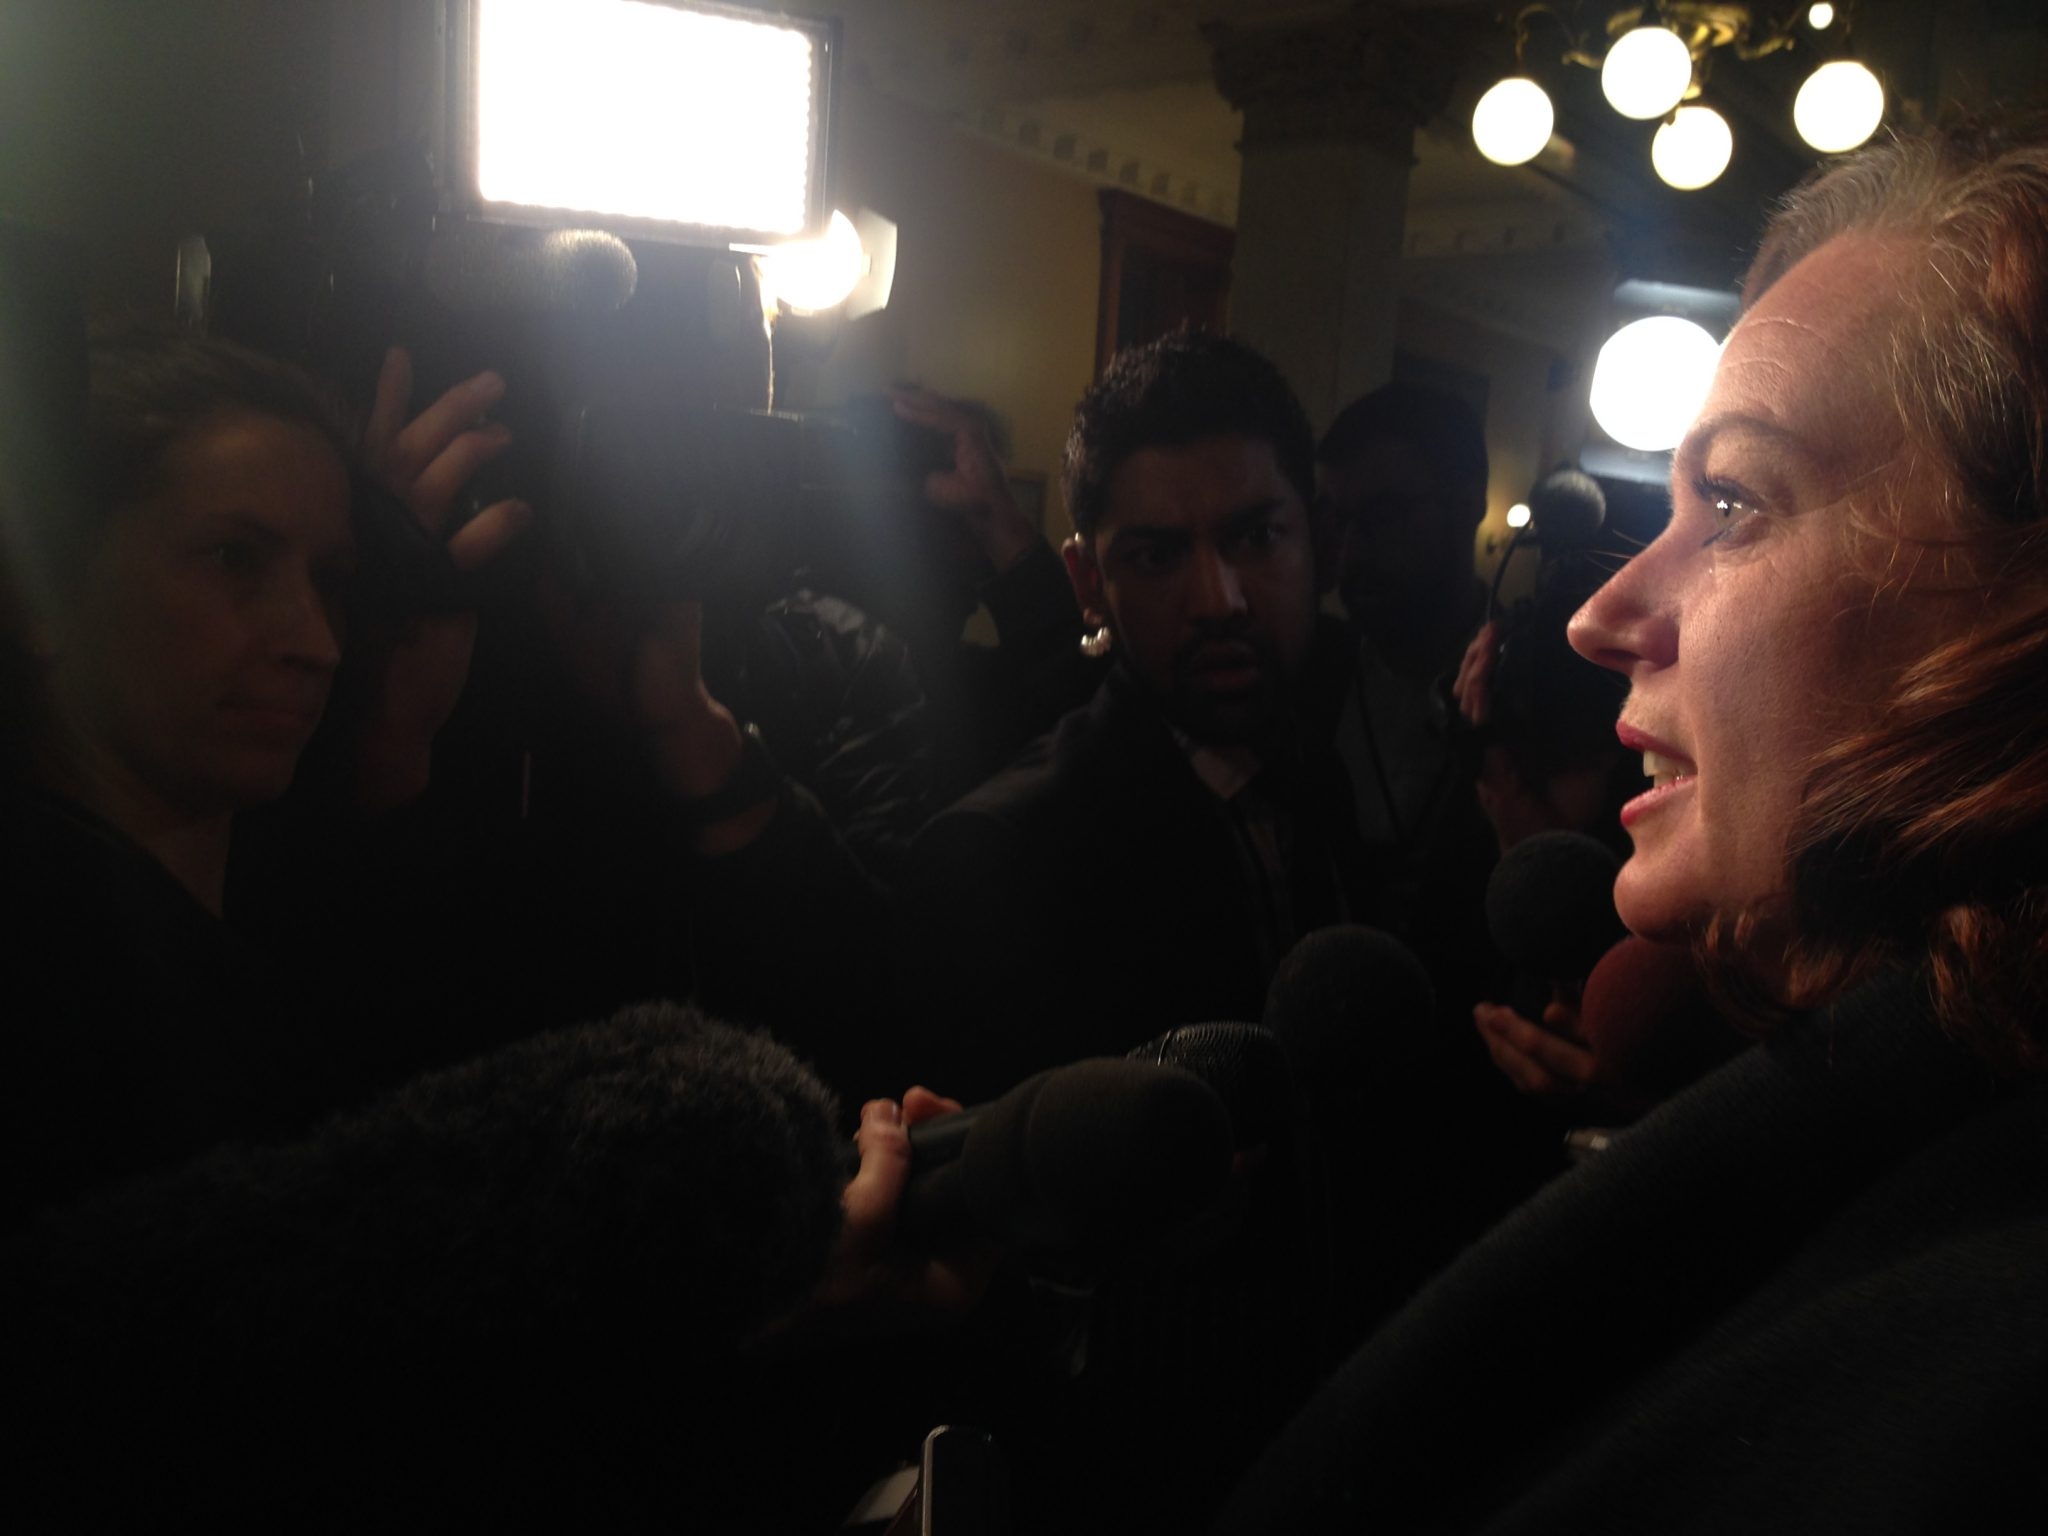 Lisa MacLeod: I reported allegations I'd heard about Patrick Brown to the campaign before Christmas